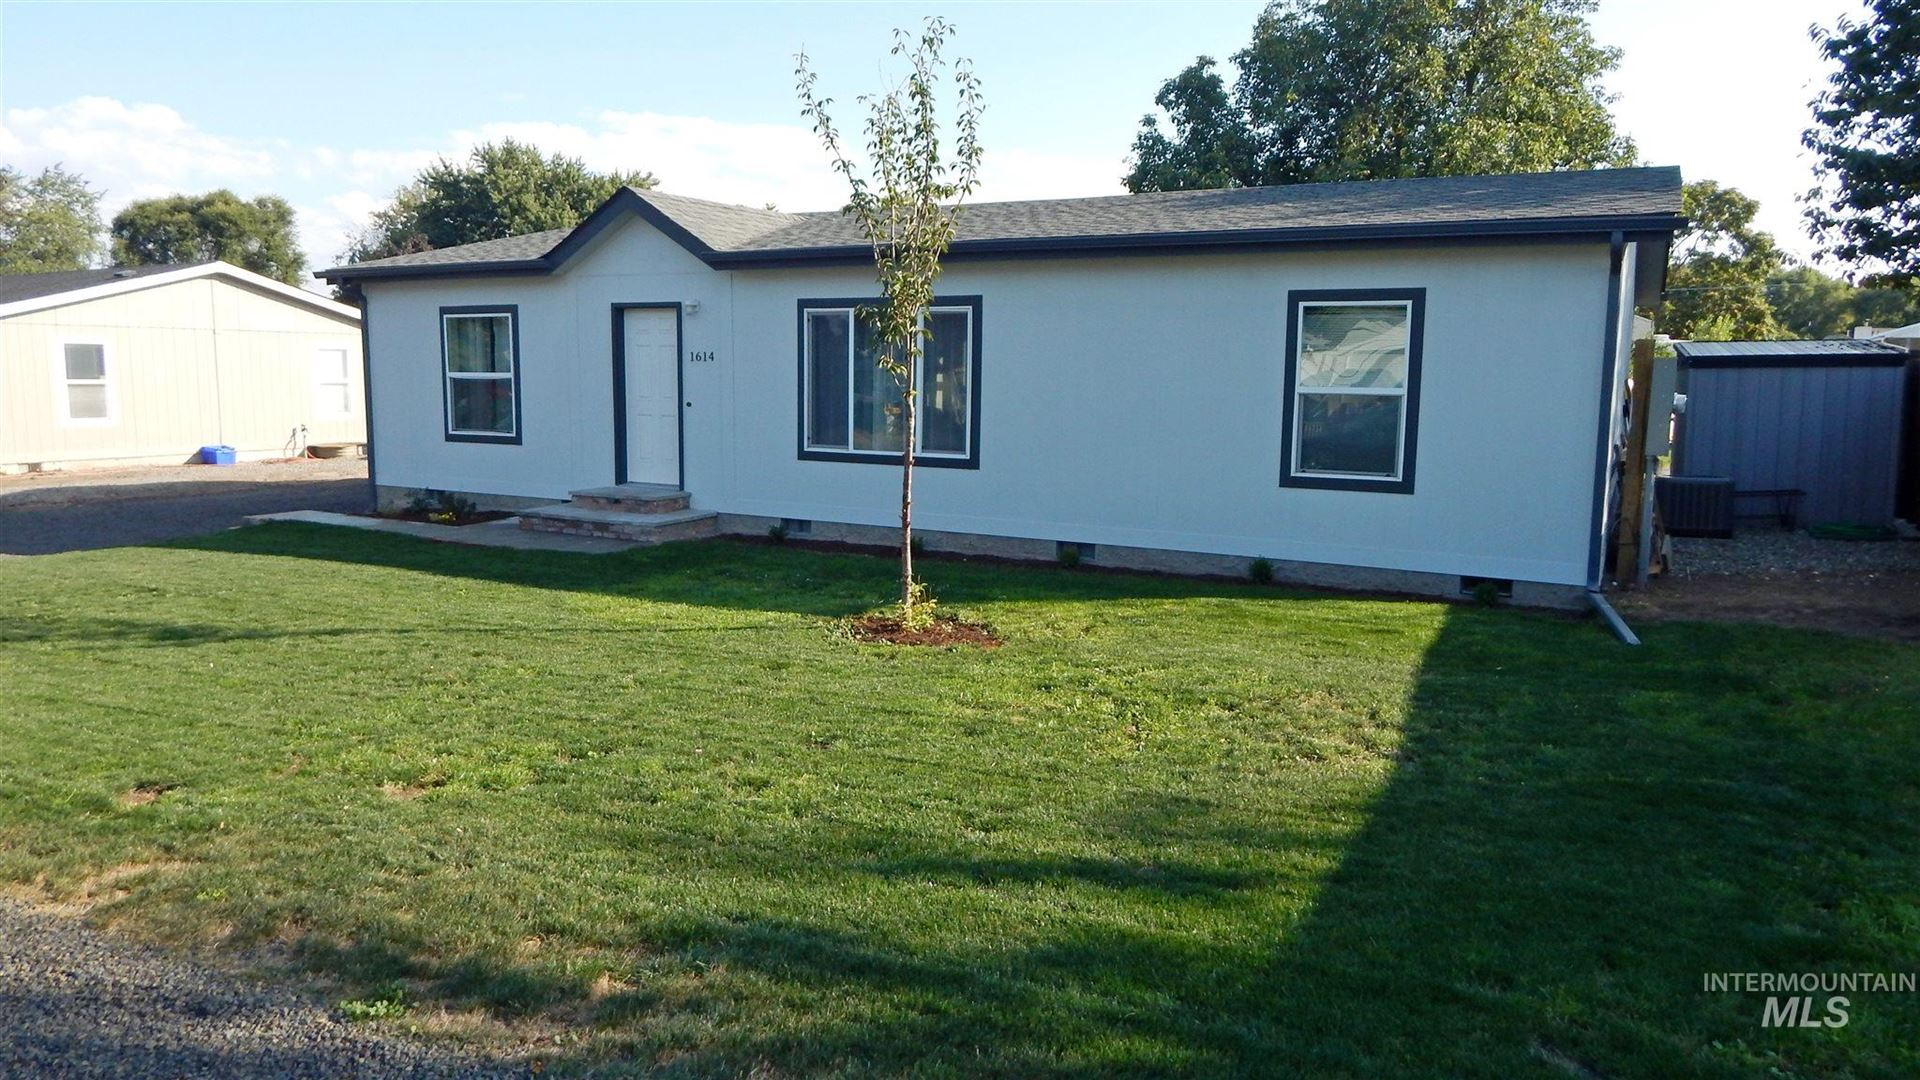 1614 Birch Dr., Lewiston, ID 83501 - MLS#: 98781505